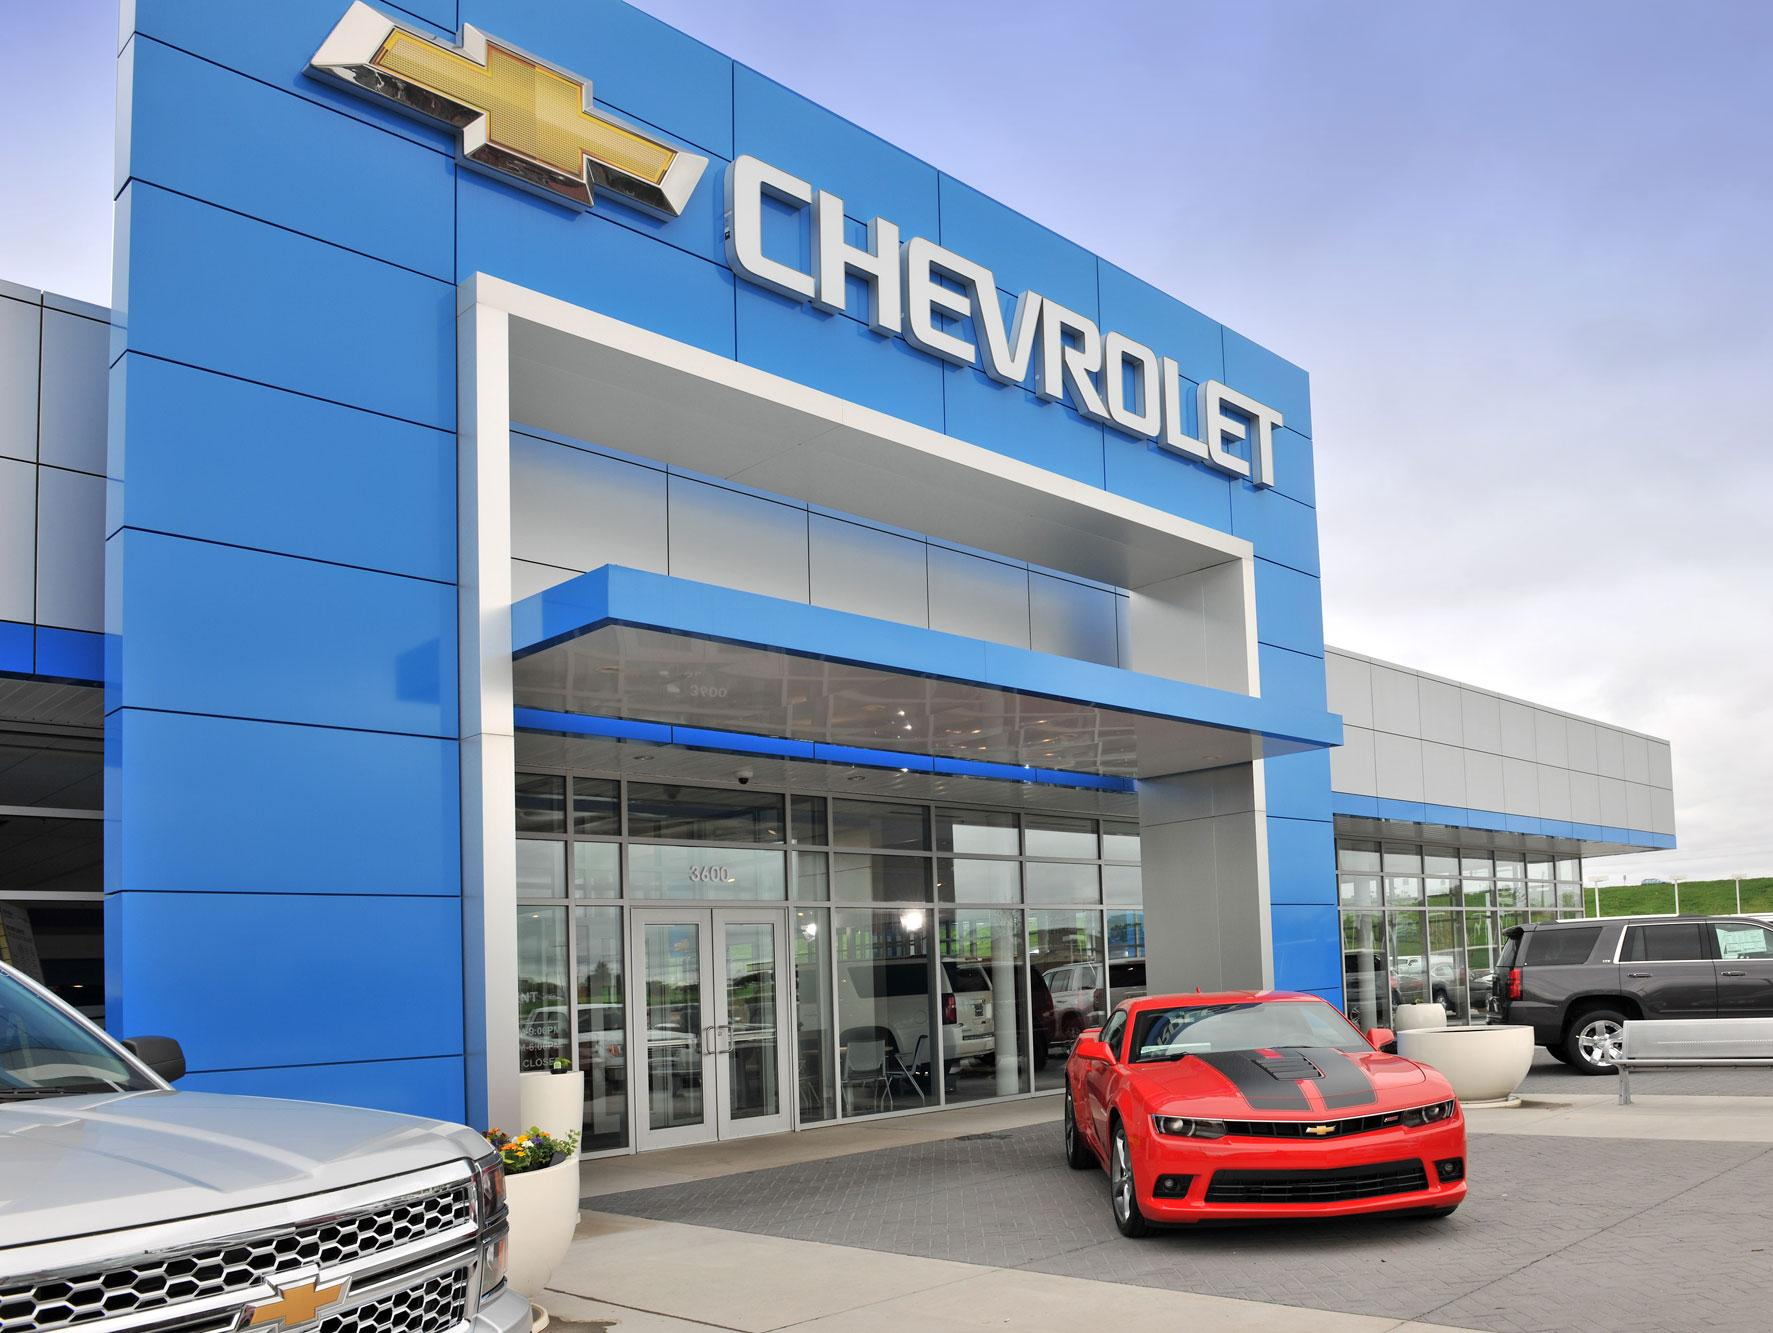 dealership image storefront